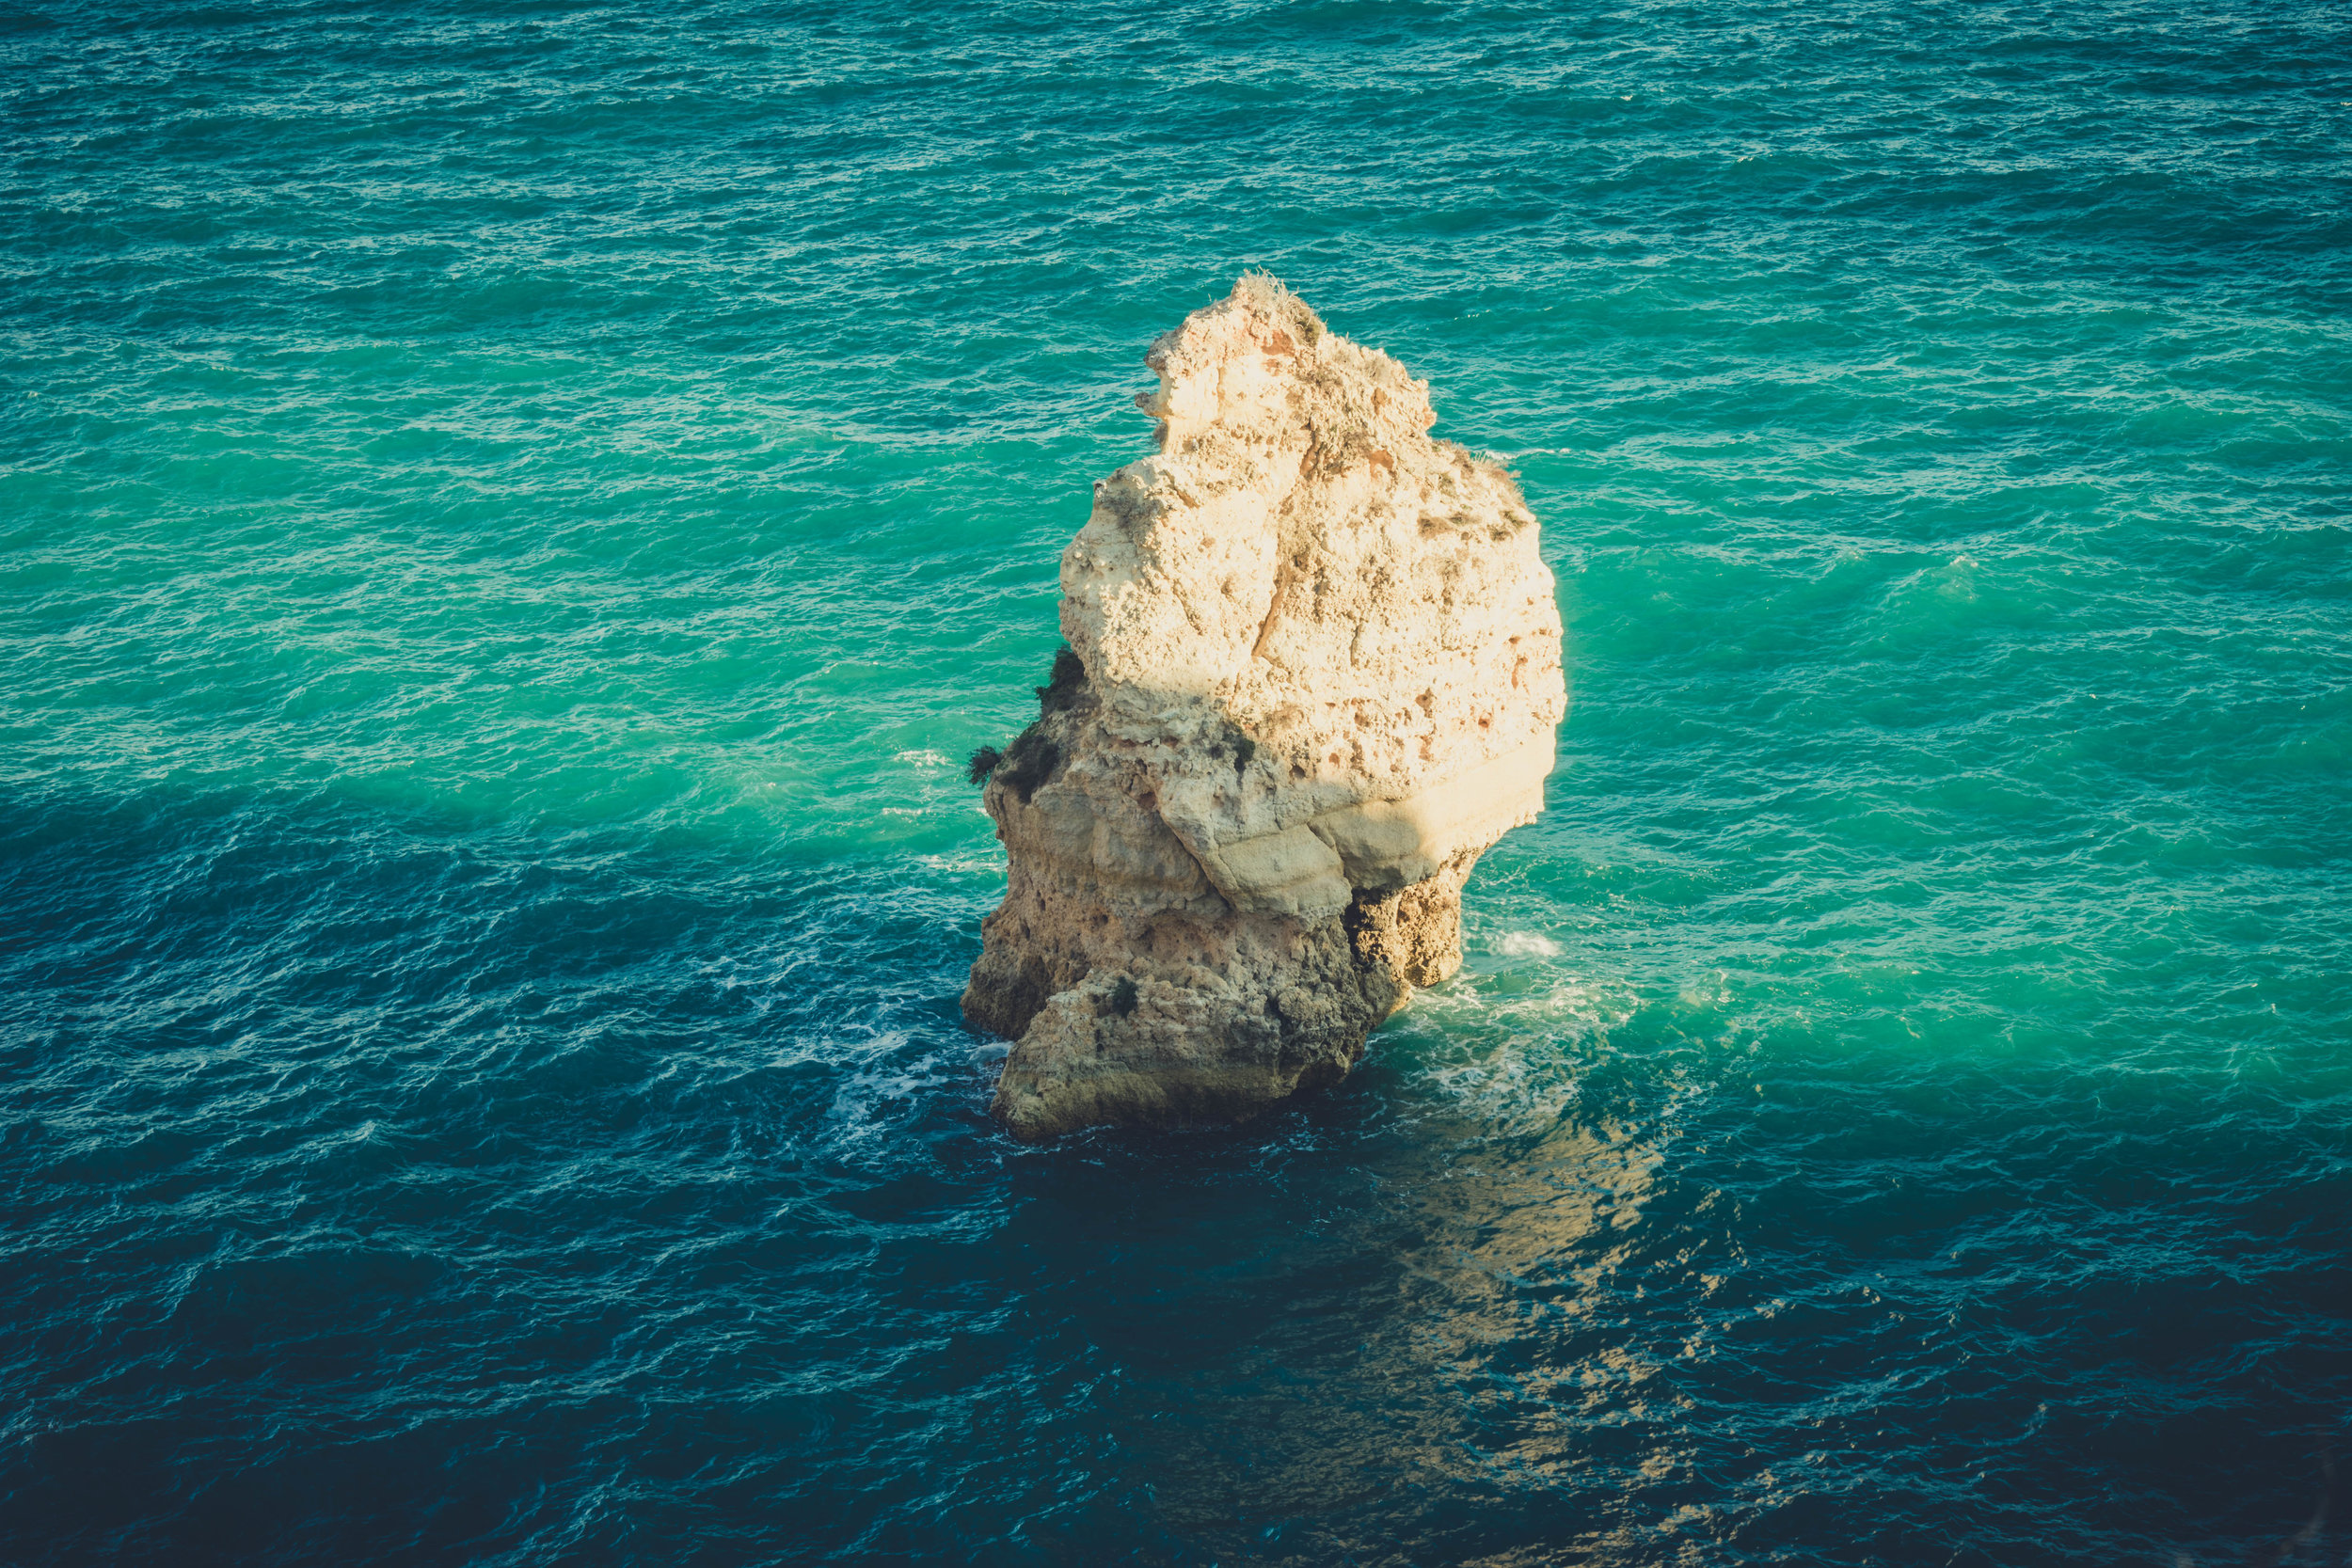 Marinha Beach. Seven Hanging Valleys Walk. portugal. algarve. beach. cliffs. tavel. caves. lonely rock in the sea.jpg